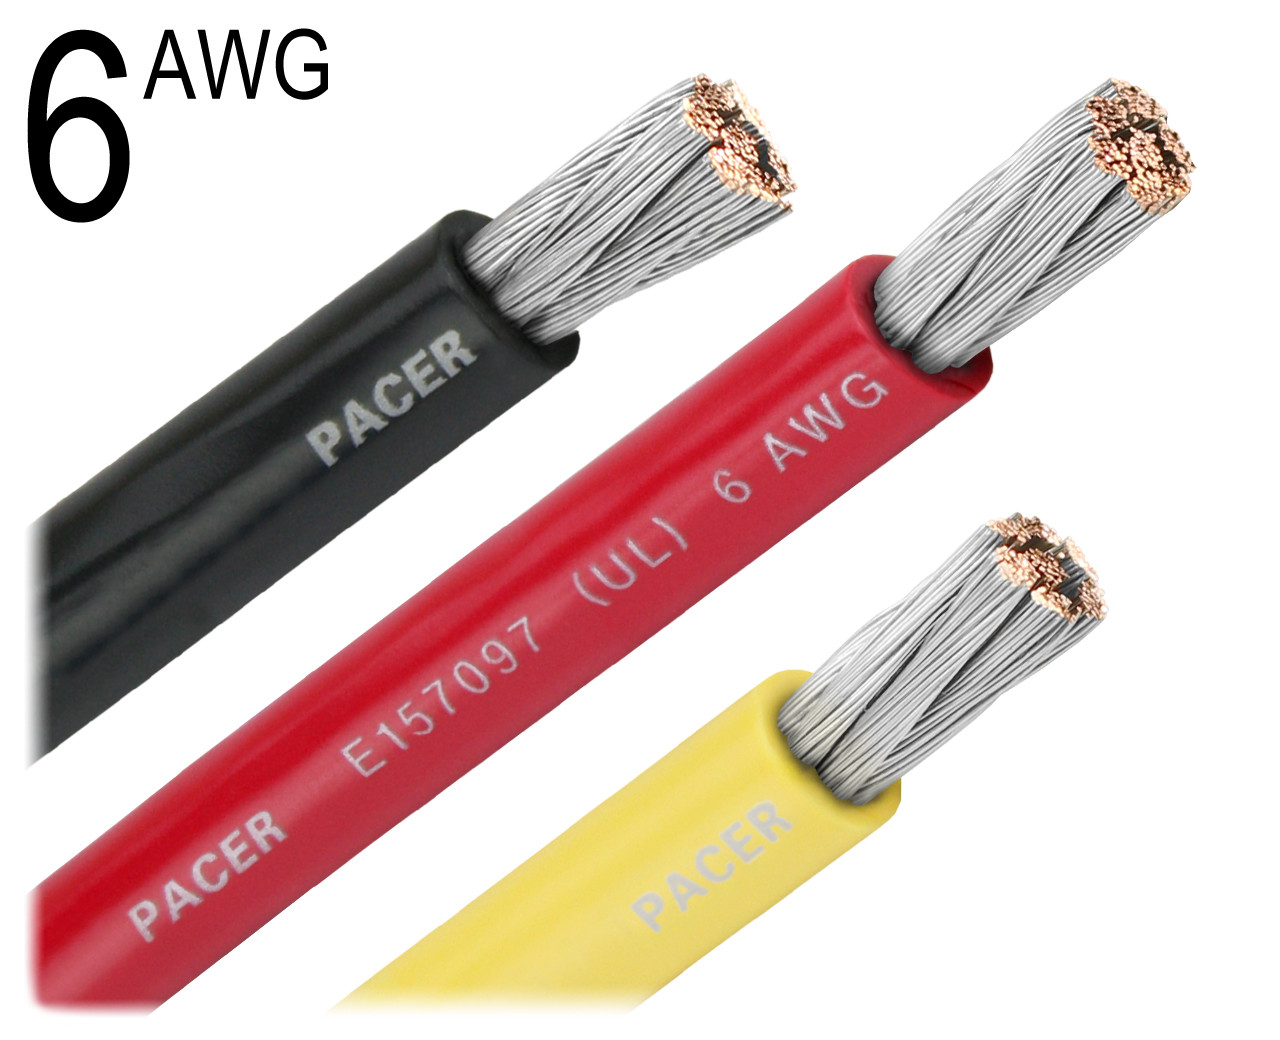 6 AWG GAUGE GREEN MARINE TINNED COPPER BATTERY CABLE BOAT WIRE BC-5W2 USA 30 FT